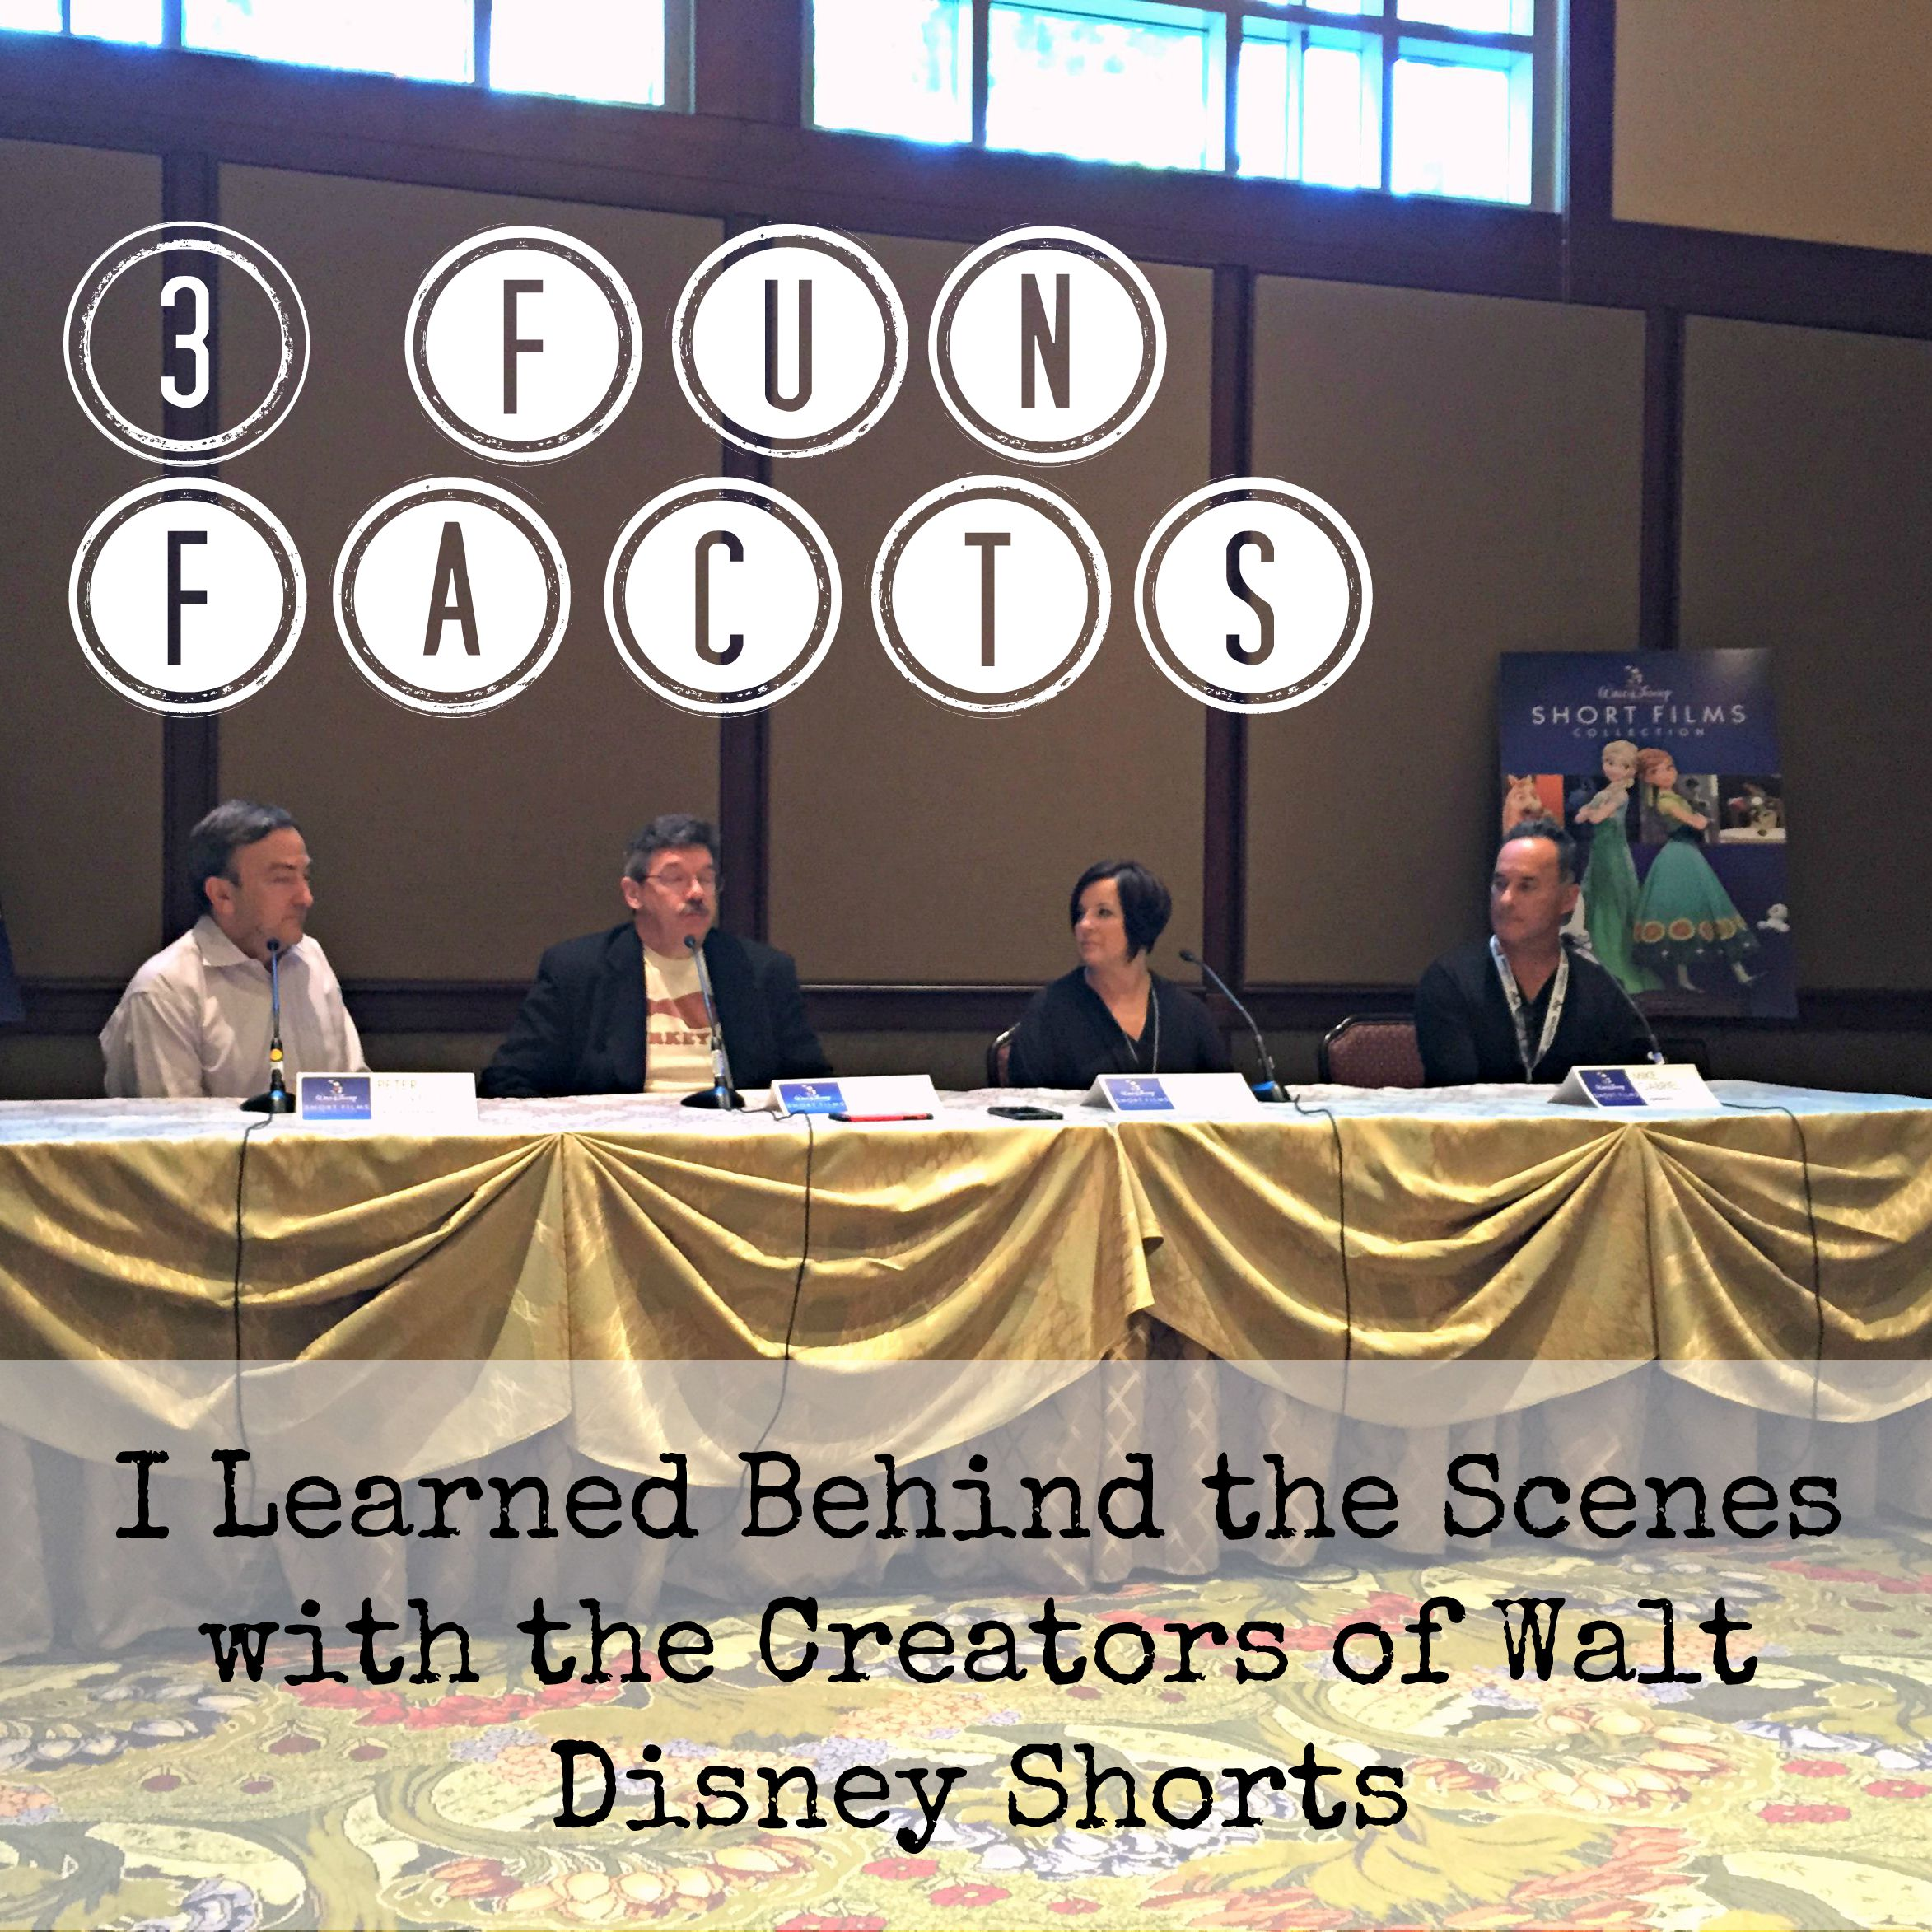 3 Fun Facts I Learned Behind the Scenes with the Creators of Walt Disney Shorts